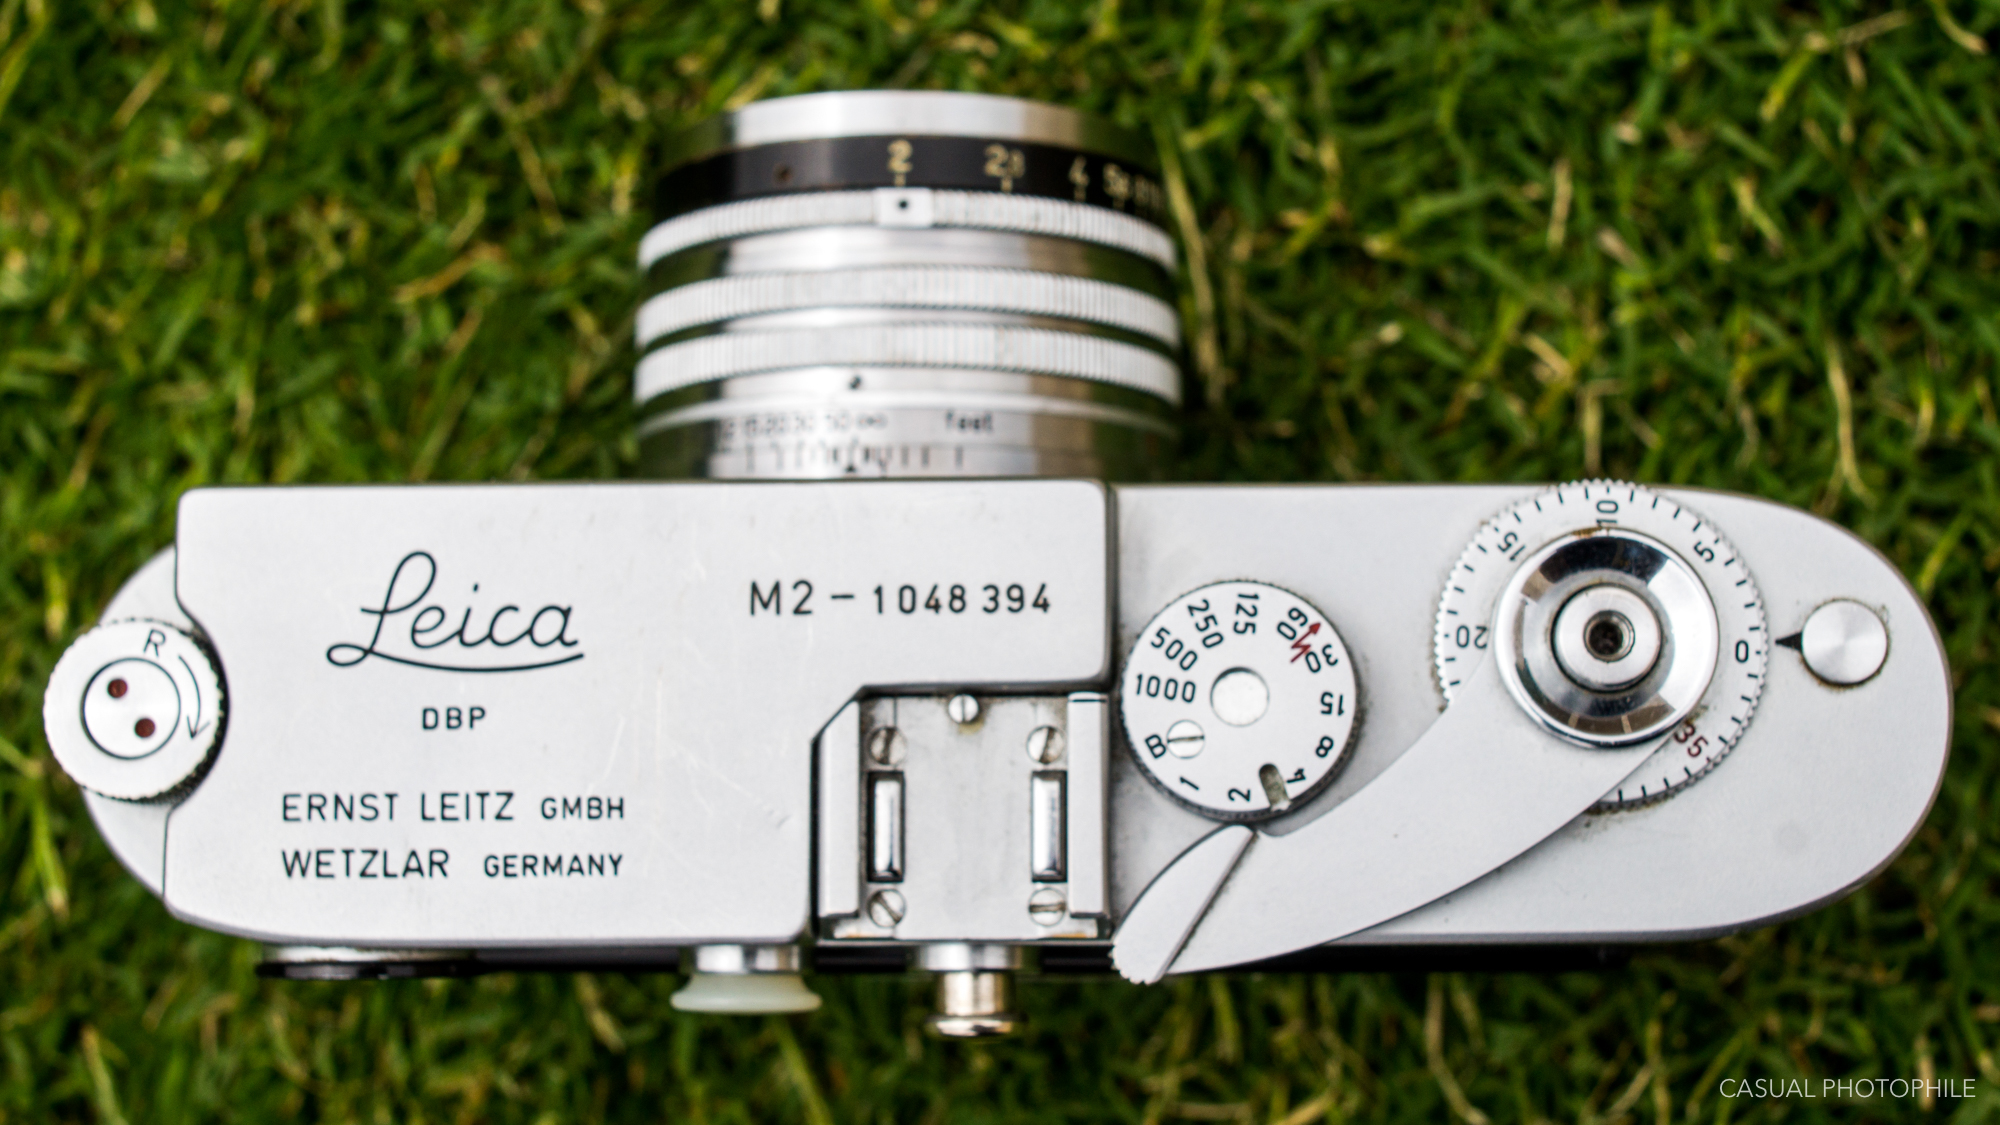 4 Reasons Why the Leica M2 is Better Than the M3